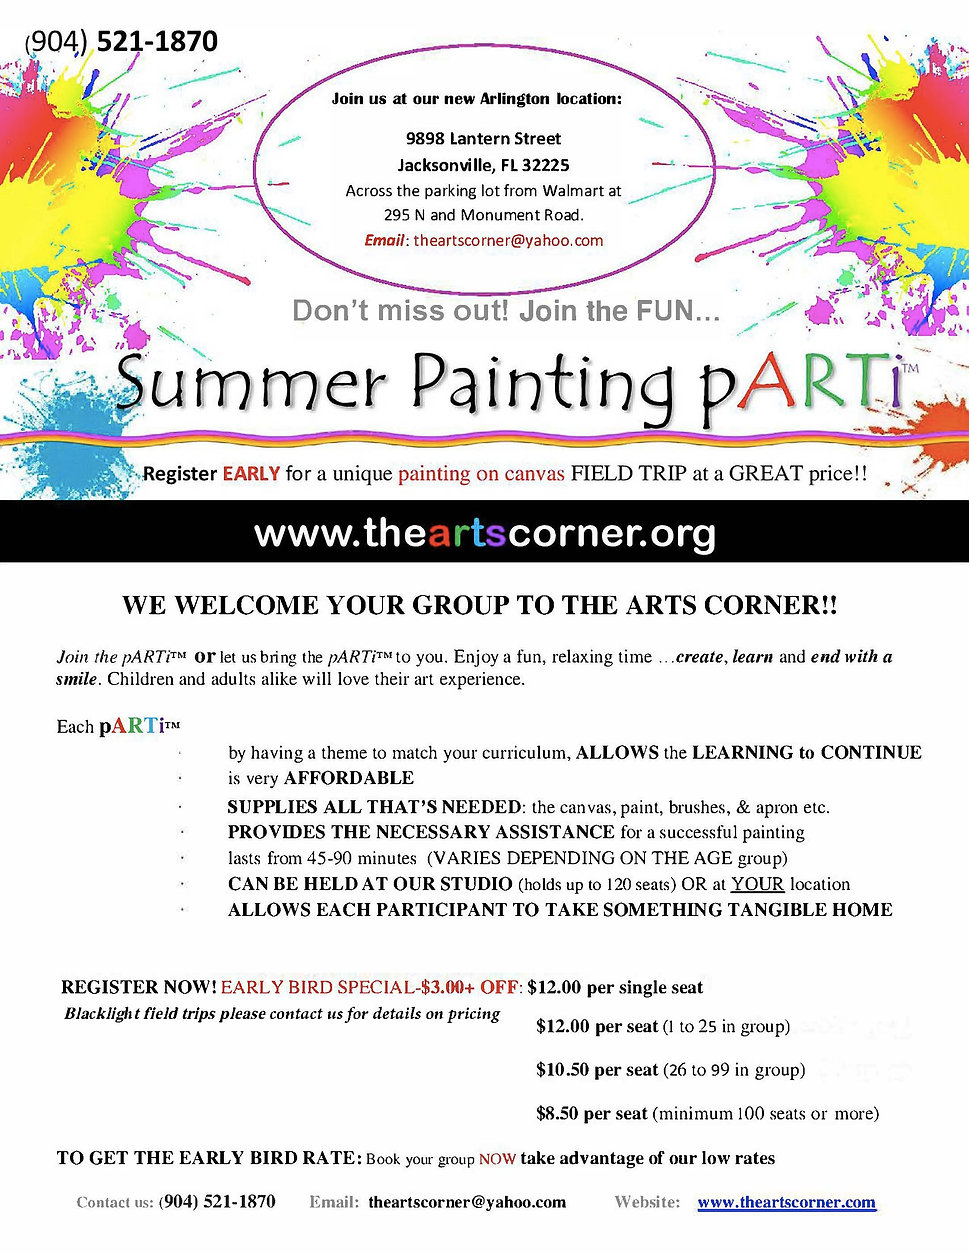 Summer Painting pARTi General correspond